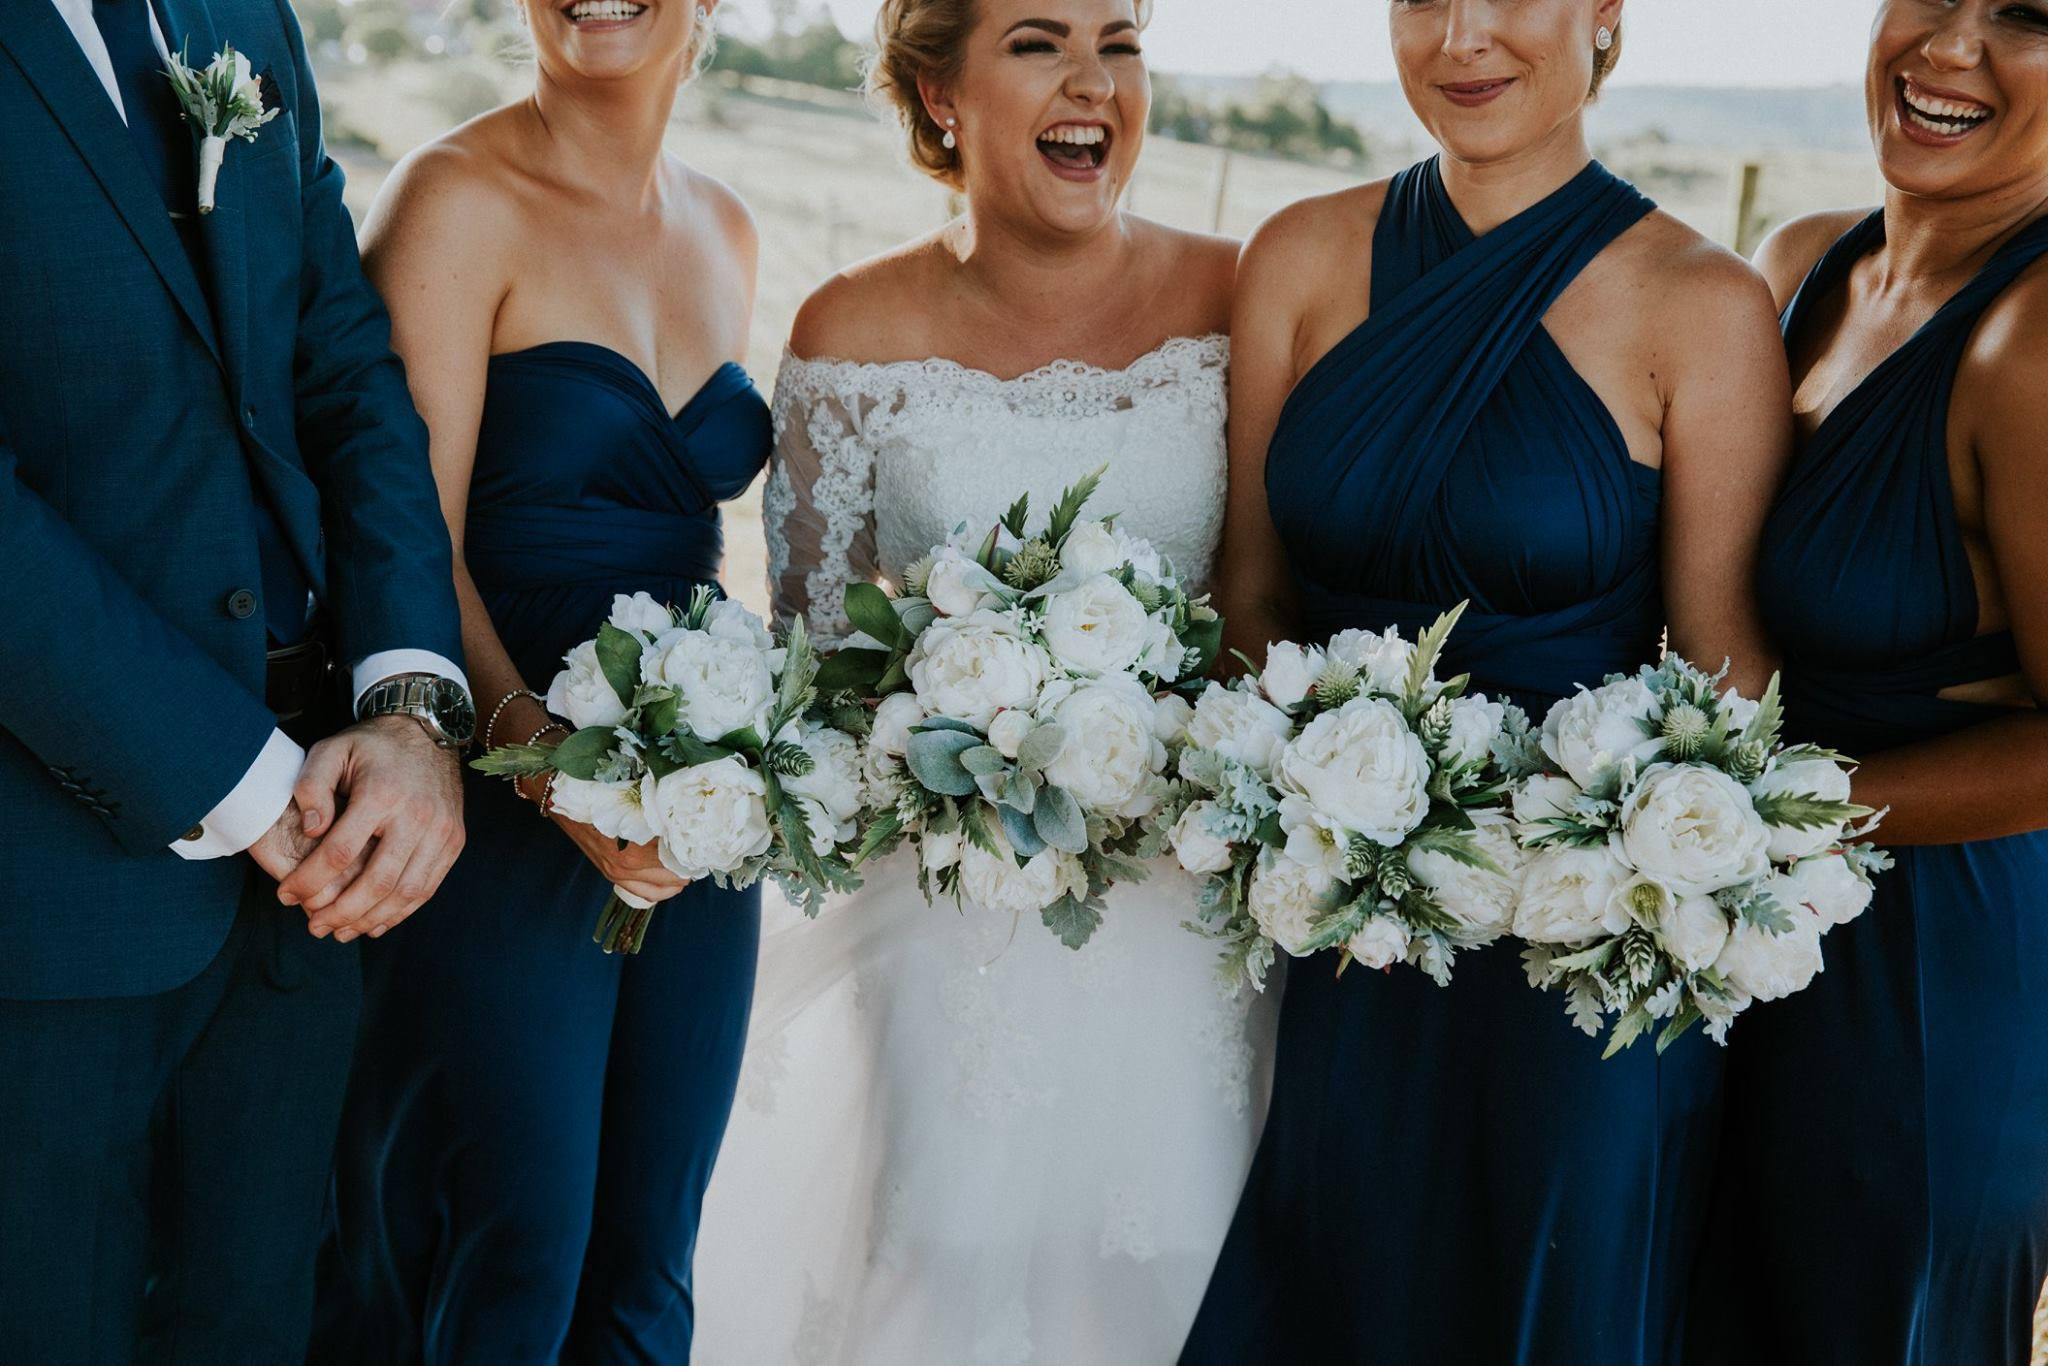 White and green bouquets on navy maids – image by Laura Slade Photography